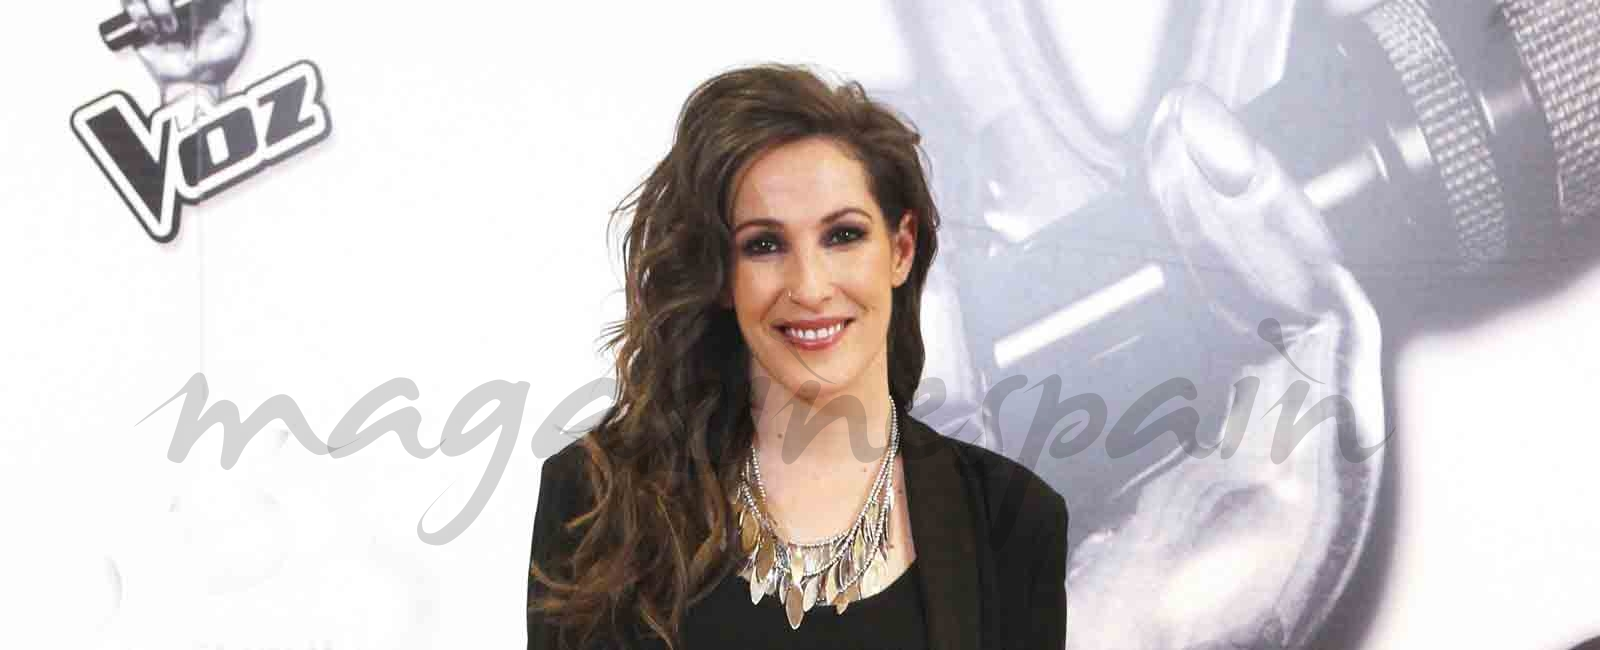 Así eran, Así son: Malú 2006-2016 – VIDEO